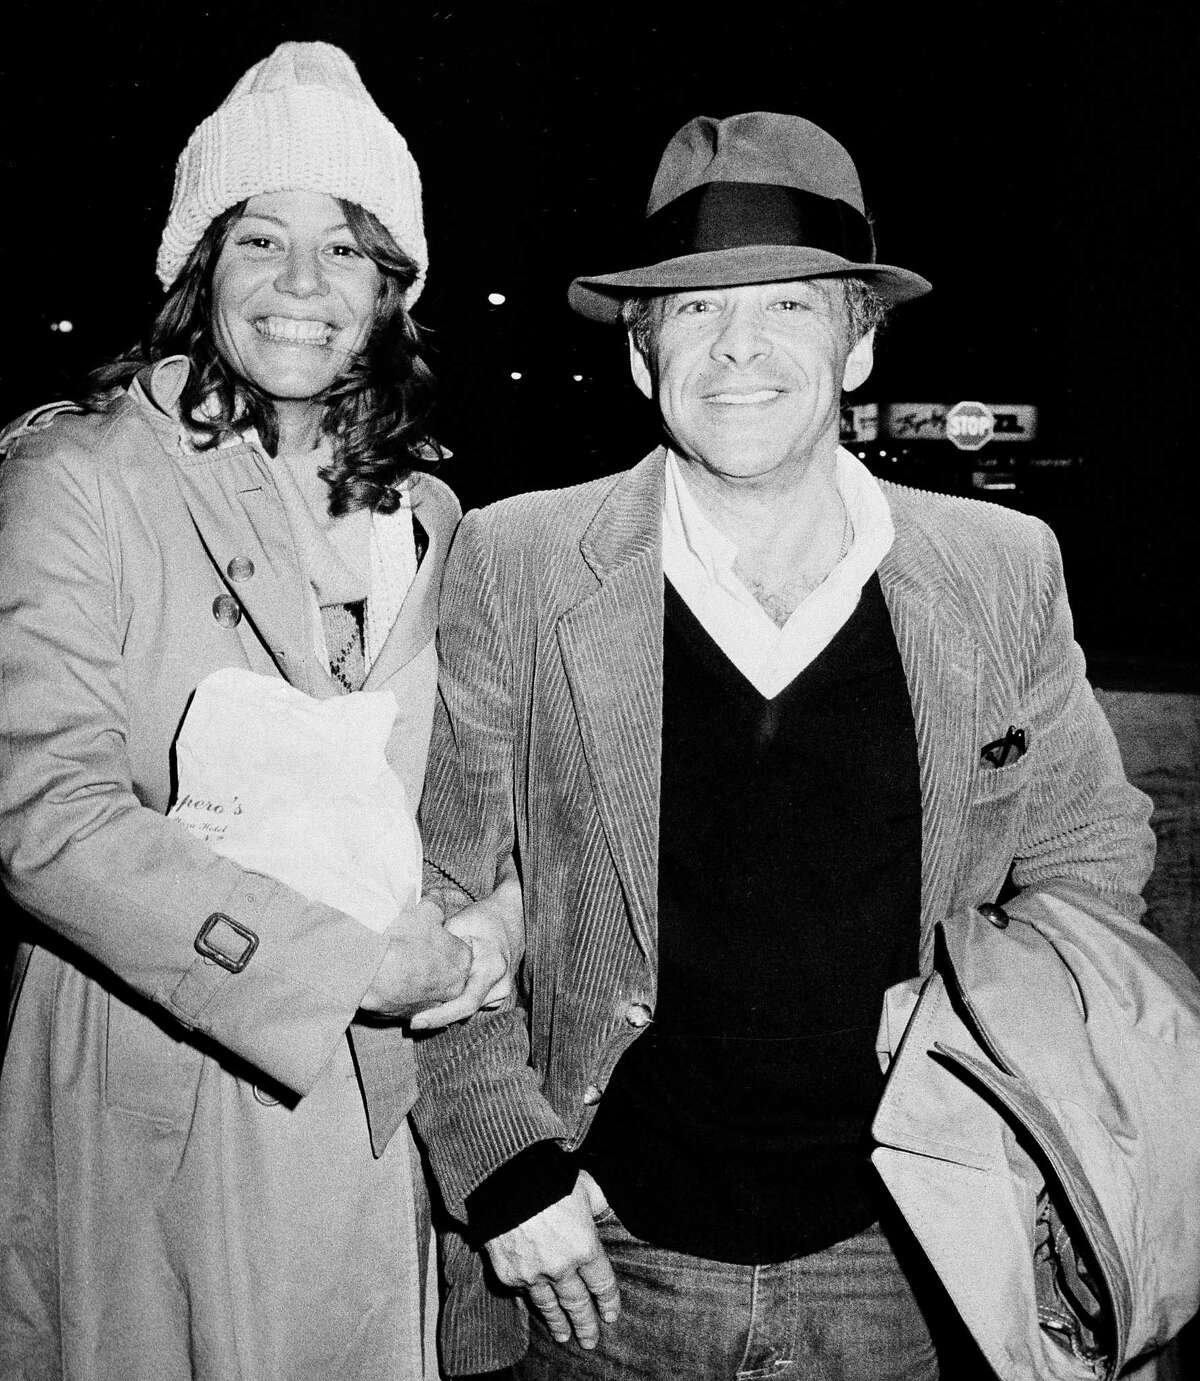 """FILE - In this Nov. 28, 1980 file photo, Chuck Barris, host of the television's """"Gong Show,"""" and Robin Altman leave the Pierre Hotel in New York. Game show impresario Barris has died at 87. Barris, the madcap producer of """"The Gong Show"""" and """"The Dating Game,"""" died of natural causes Tuesday afternoon, March 21, 2017, at his home in Palisades, New York. (AP Photo/Sands, File) ORG XMIT: CAET854"""